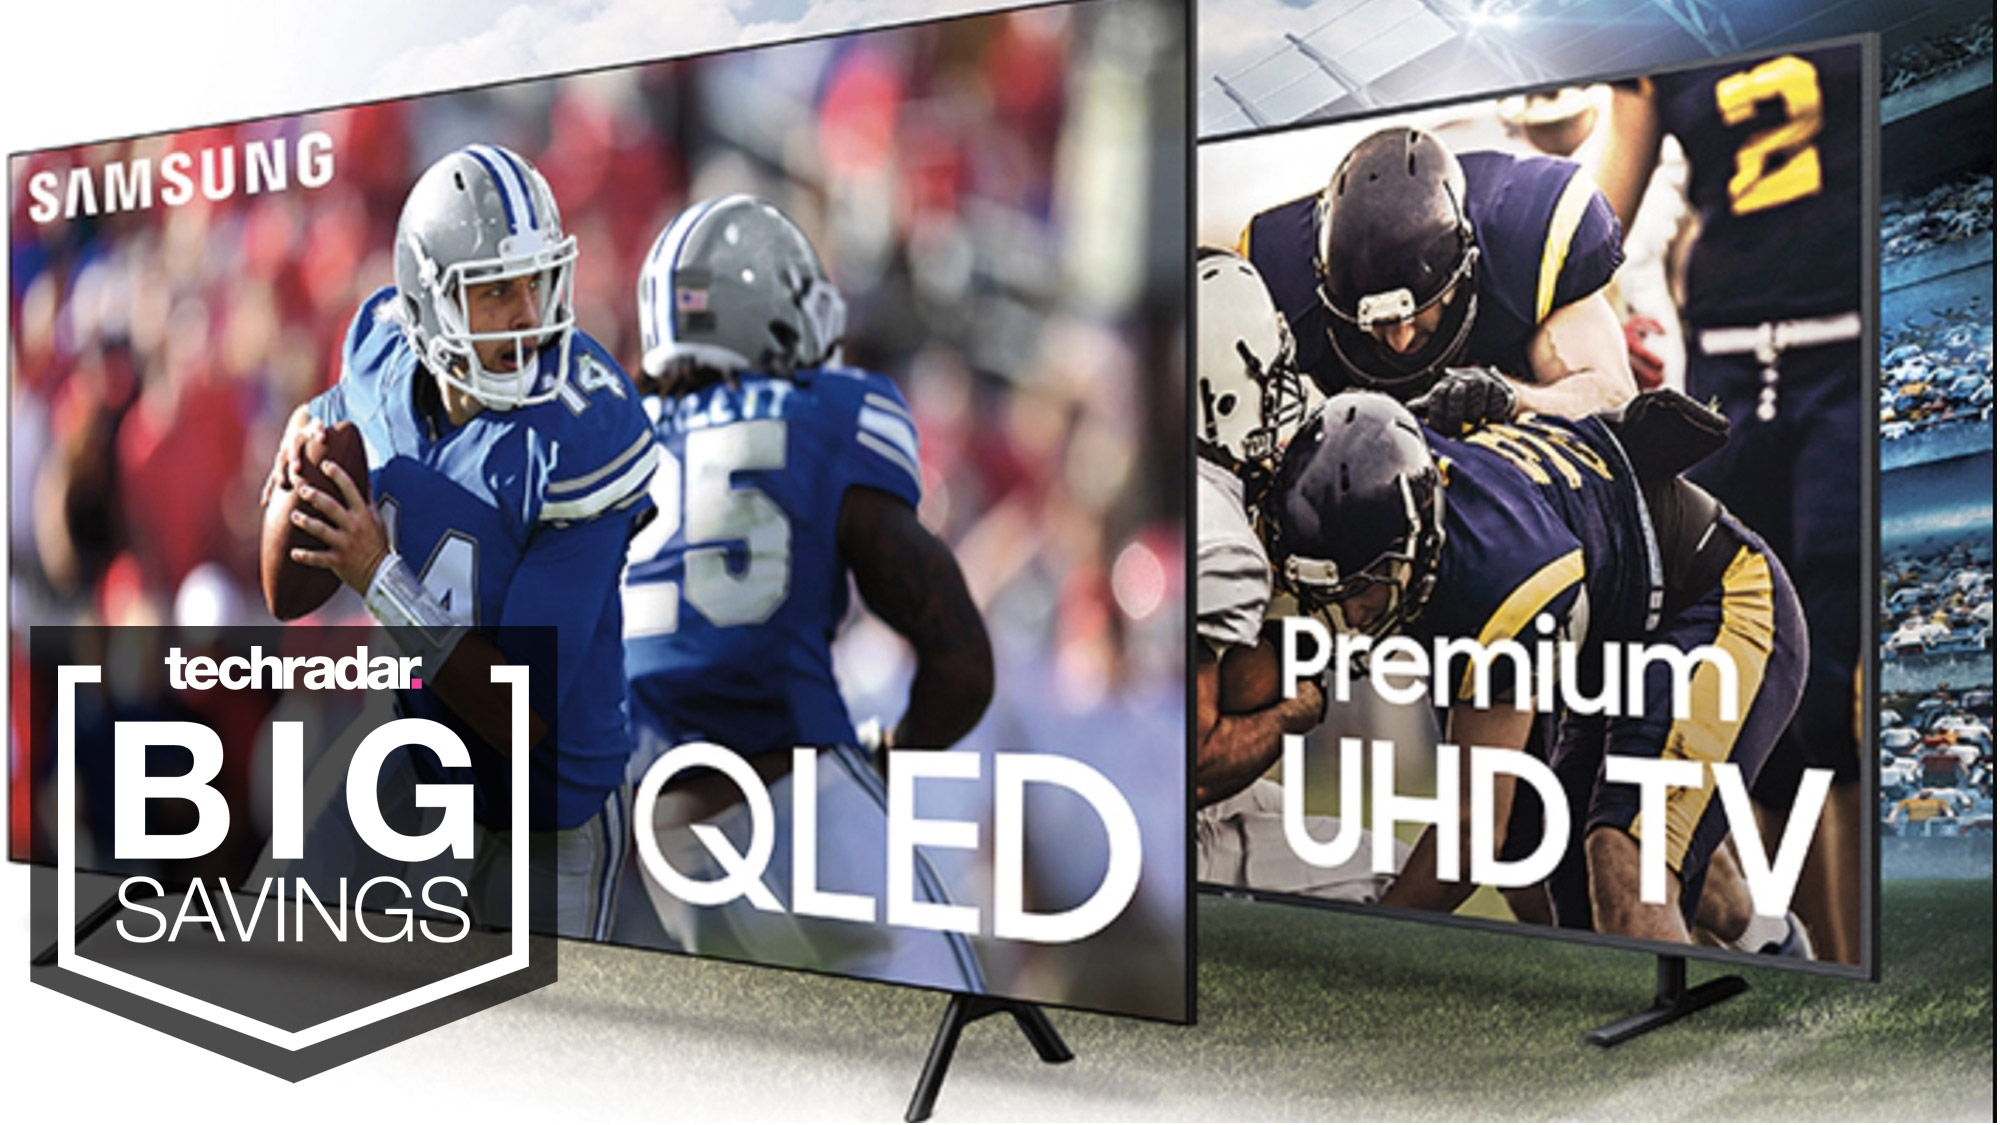 Samsung Super Bowl TV deals at Walmart: 4K TVs starting at $248